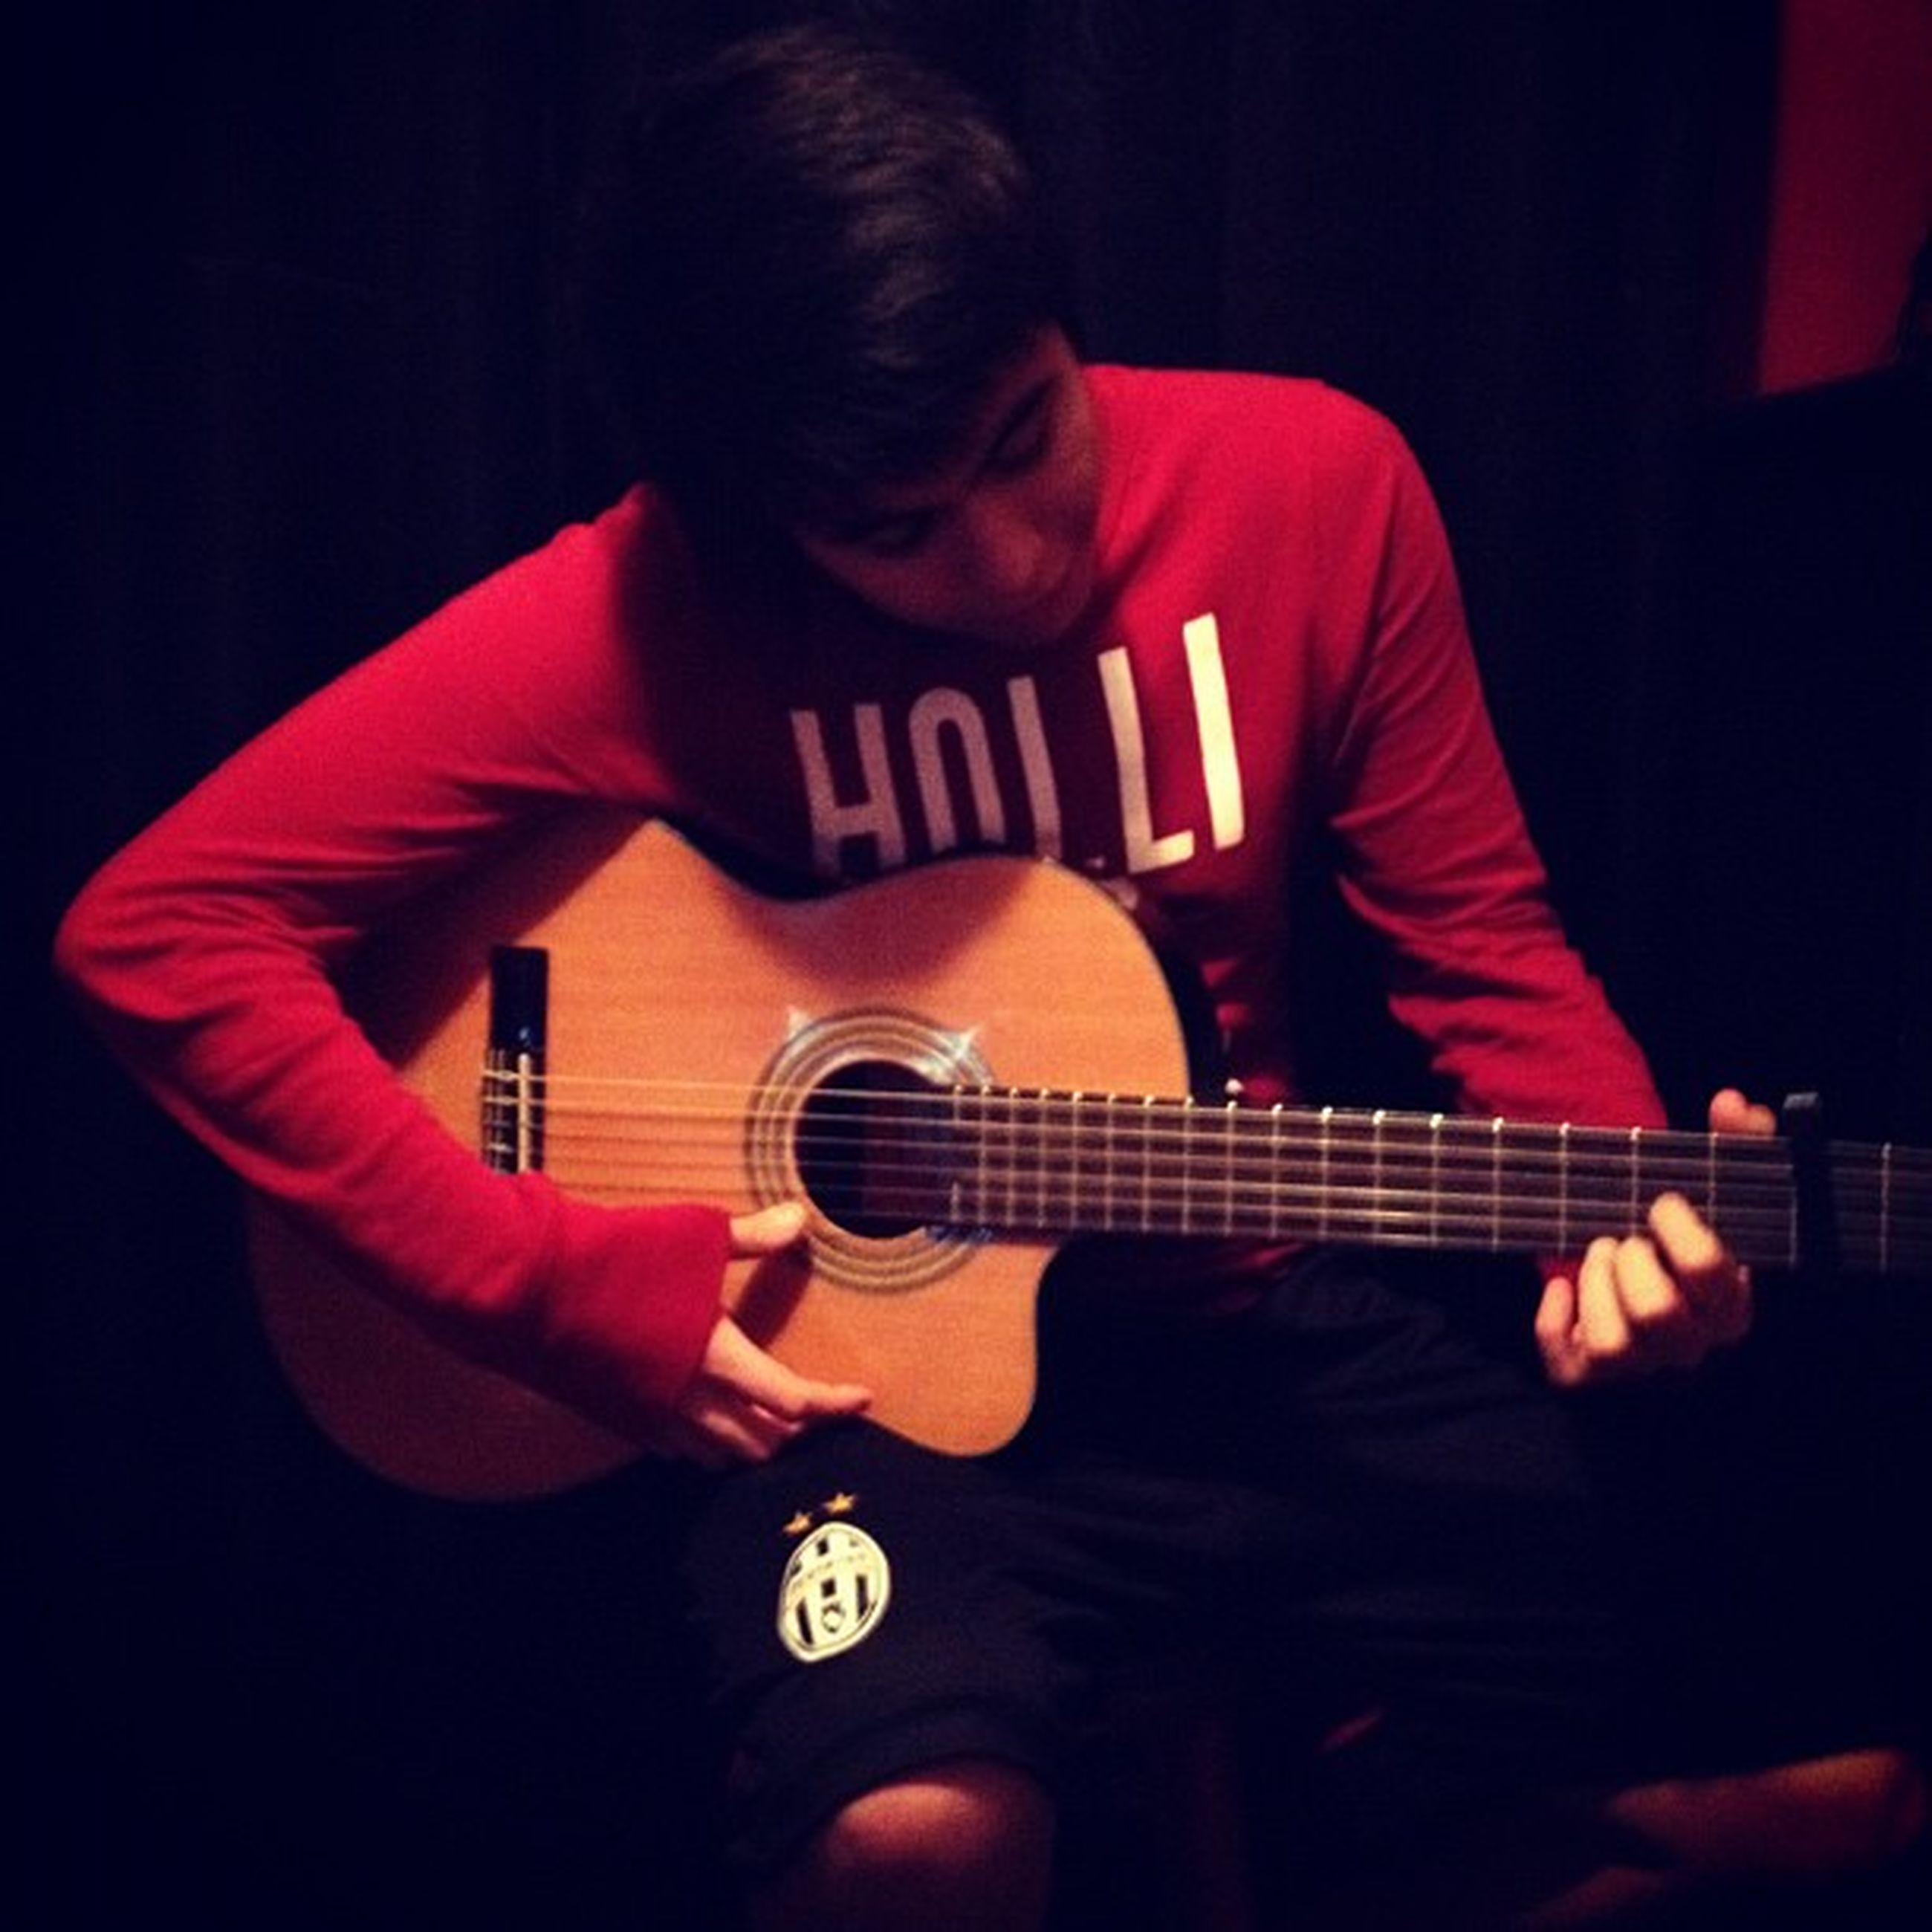 indoors, holding, playing, music, guitar, lifestyles, musical instrument, leisure activity, arts culture and entertainment, technology, casual clothing, wireless technology, communication, night, skill, men, childhood, hobbies